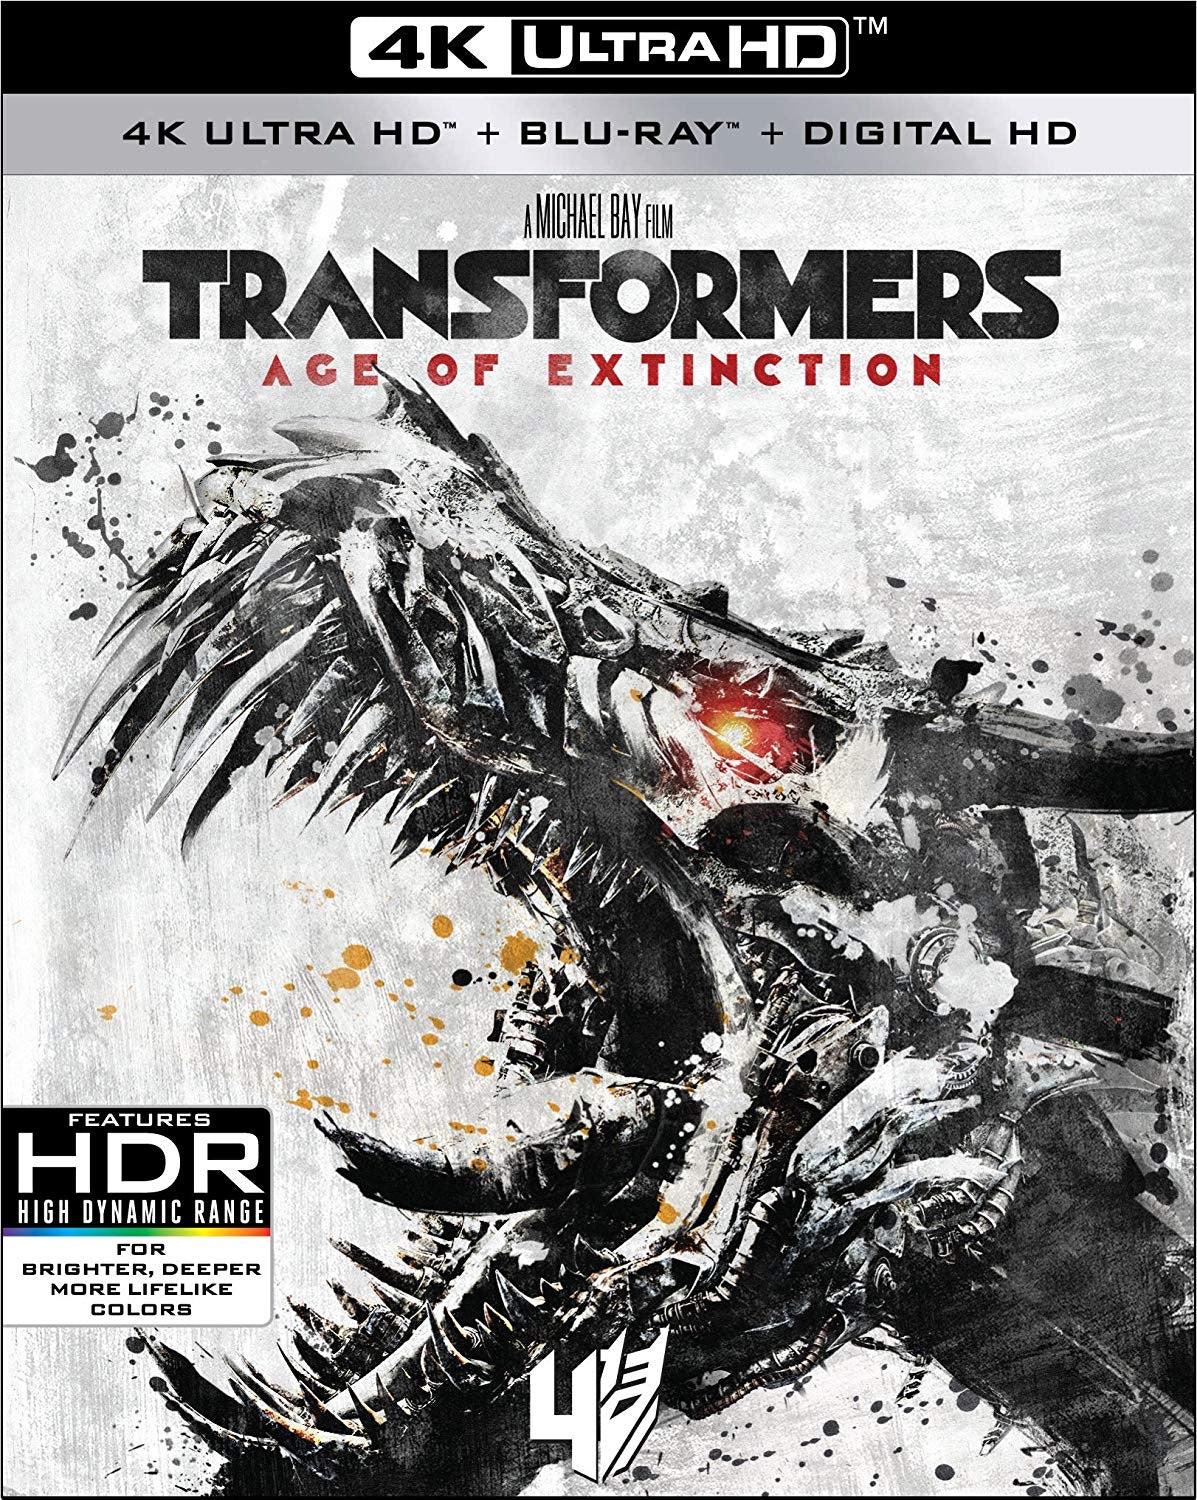 Transformers: Age of Extinction (2014) iTunes 4K redemption only